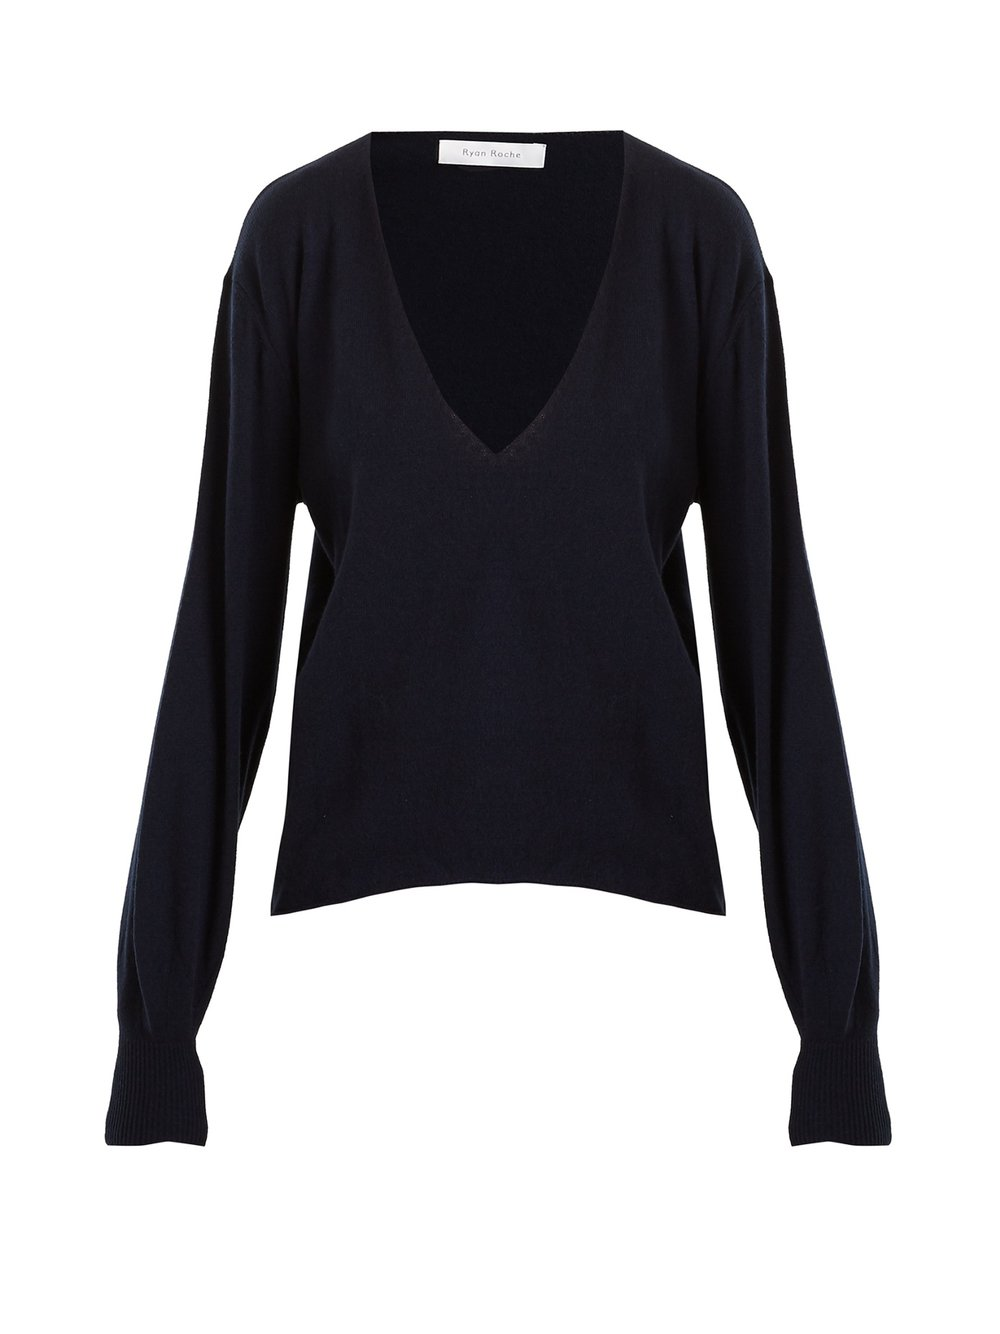 - DEEP V-NECK CASHMERE SWEATER / Ryan Roche $634